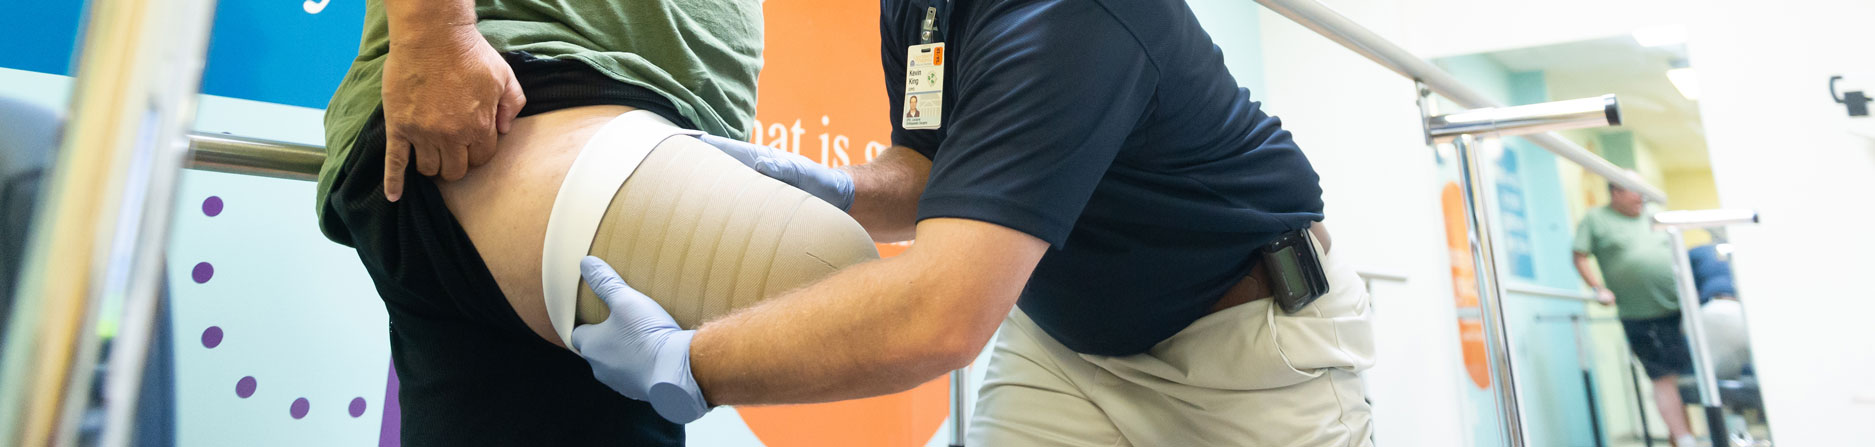 A prosthetic specialist holding a socket for a leg prosthetic on a patient's leg.